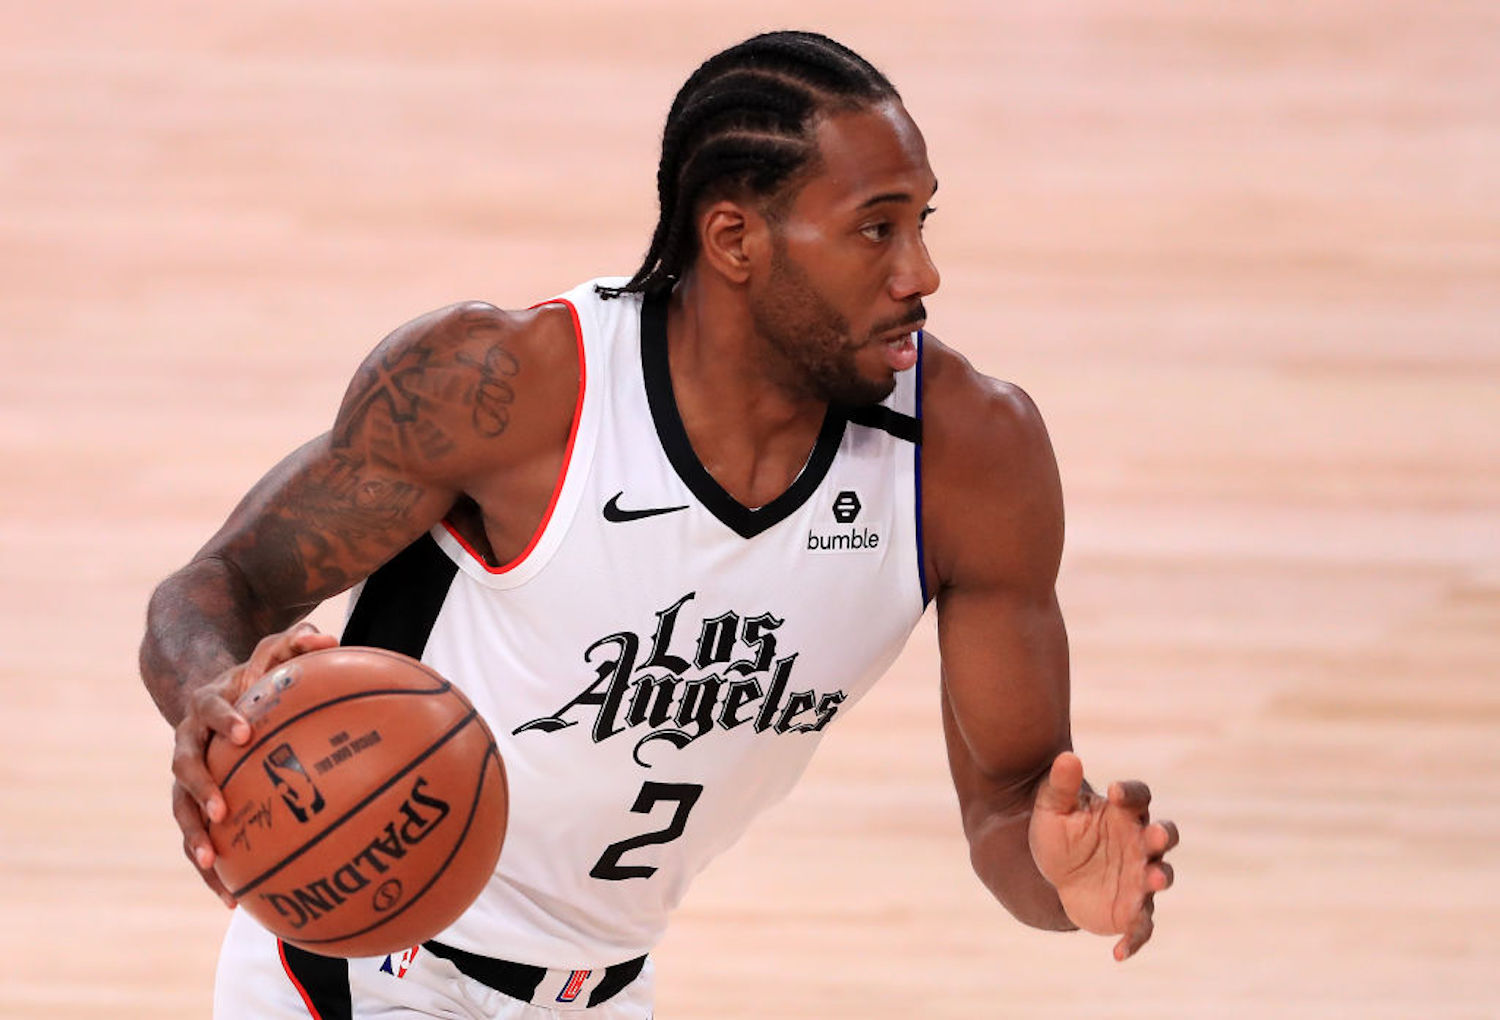 Kawhi Leonard has done some incredible things on a basketball court, but his latest highlight proves he might not even be human.